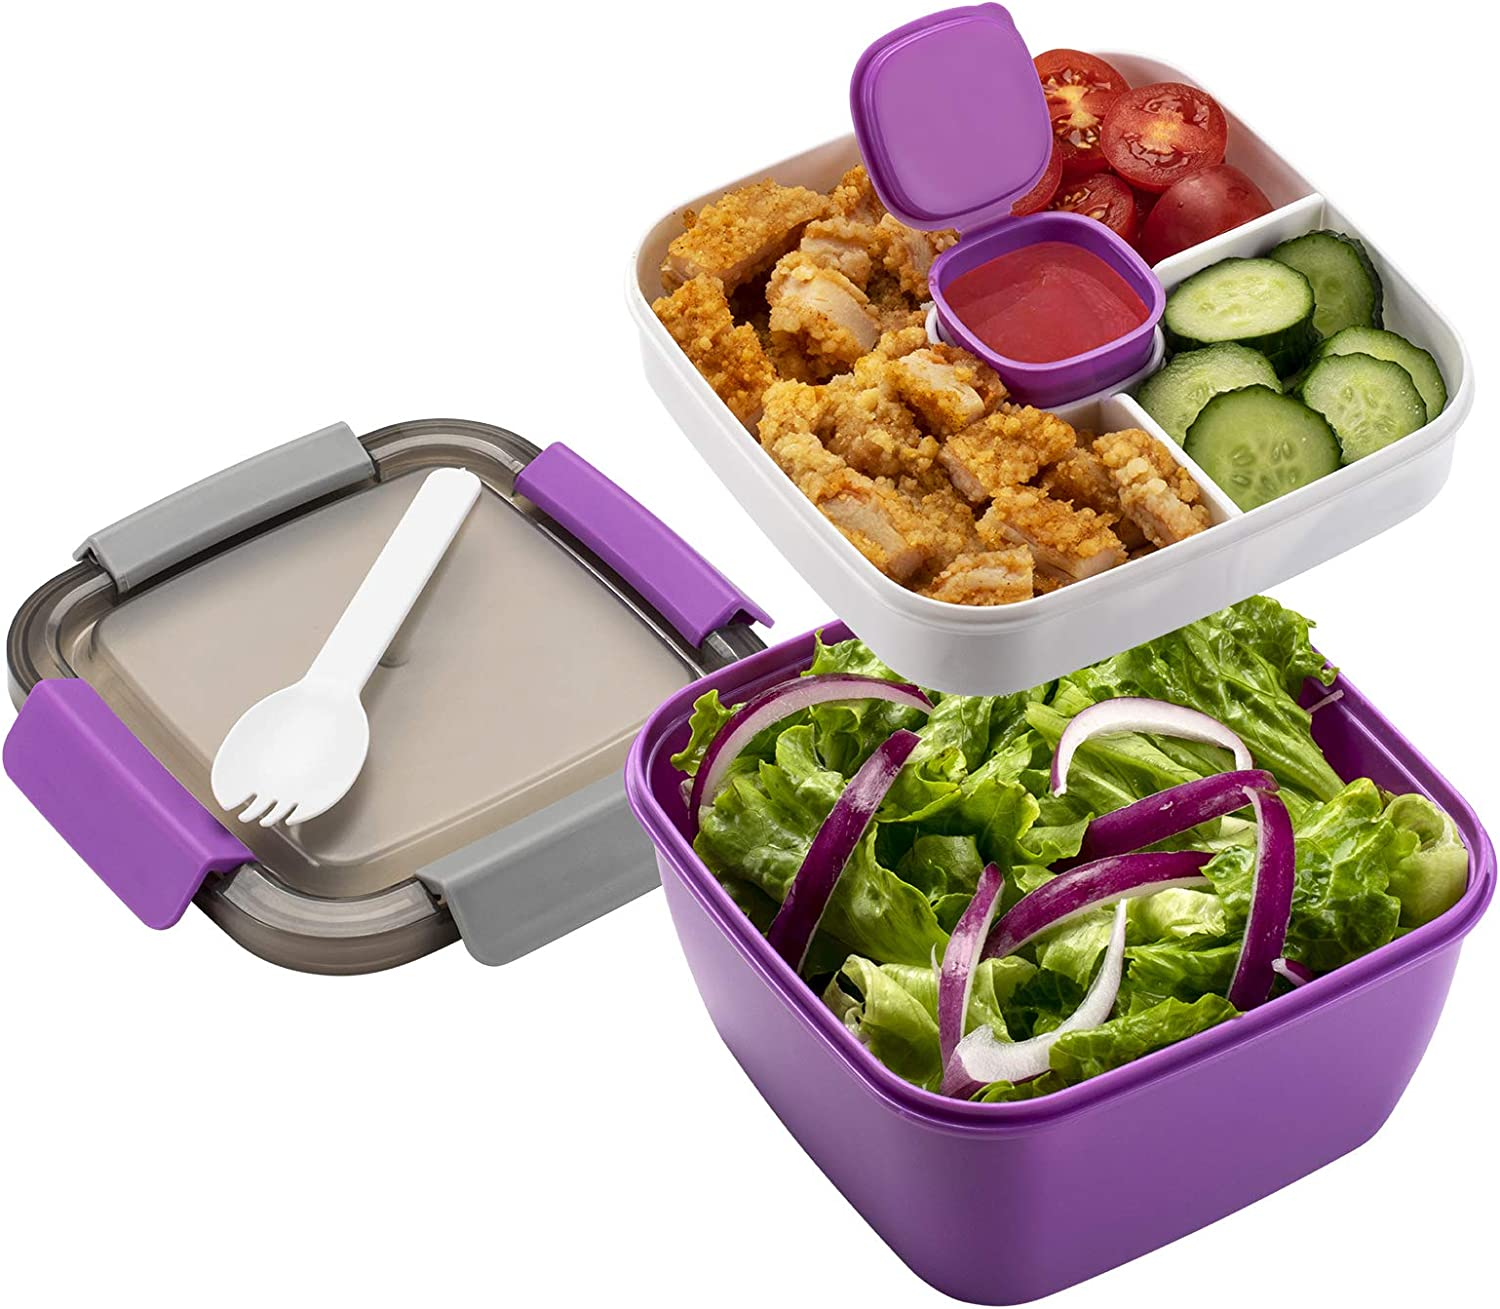 Freshmage Salad Lunch Container To Go, 52-oz Salad Bowls with 3 Compartments, Salad Dressings Container for Salad Toppings, Snacks, Men, Women (Purple)